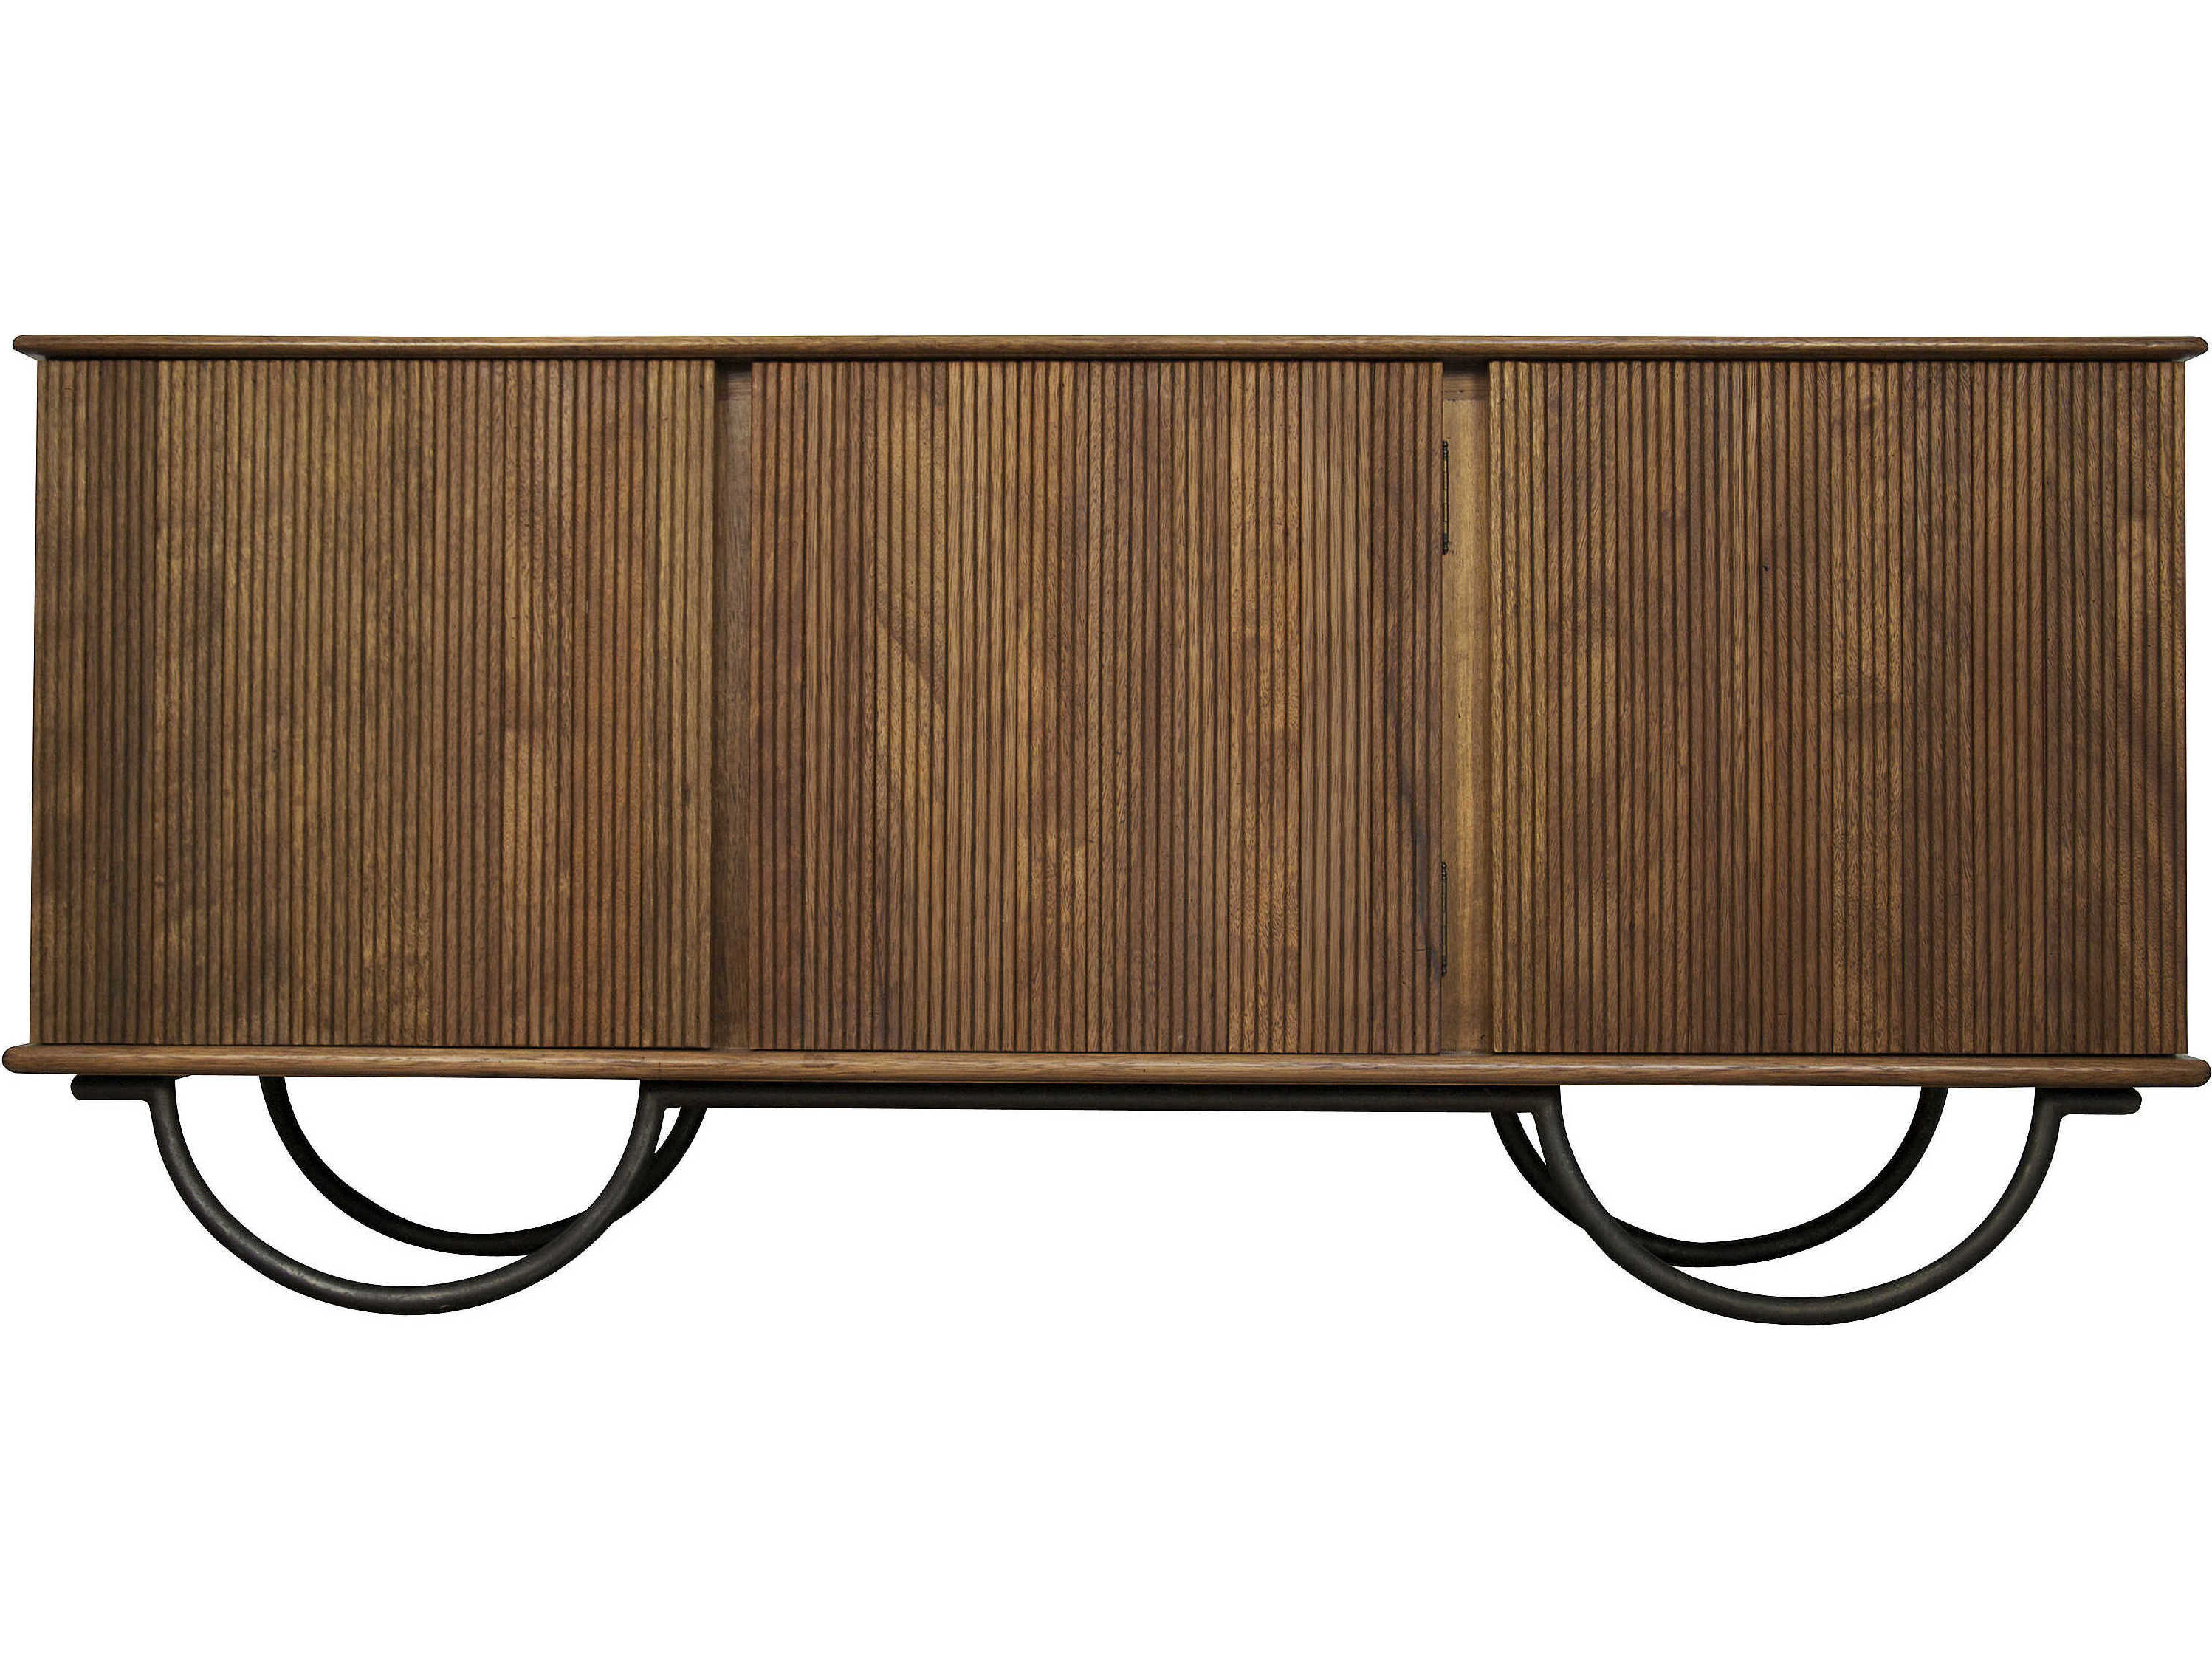 Noir Furniture Alain Dark Walnut 73.5'' X 21.5'' Sideboard Intended For Preferred Melange Brockton Sideboards (Gallery 19 of 20)